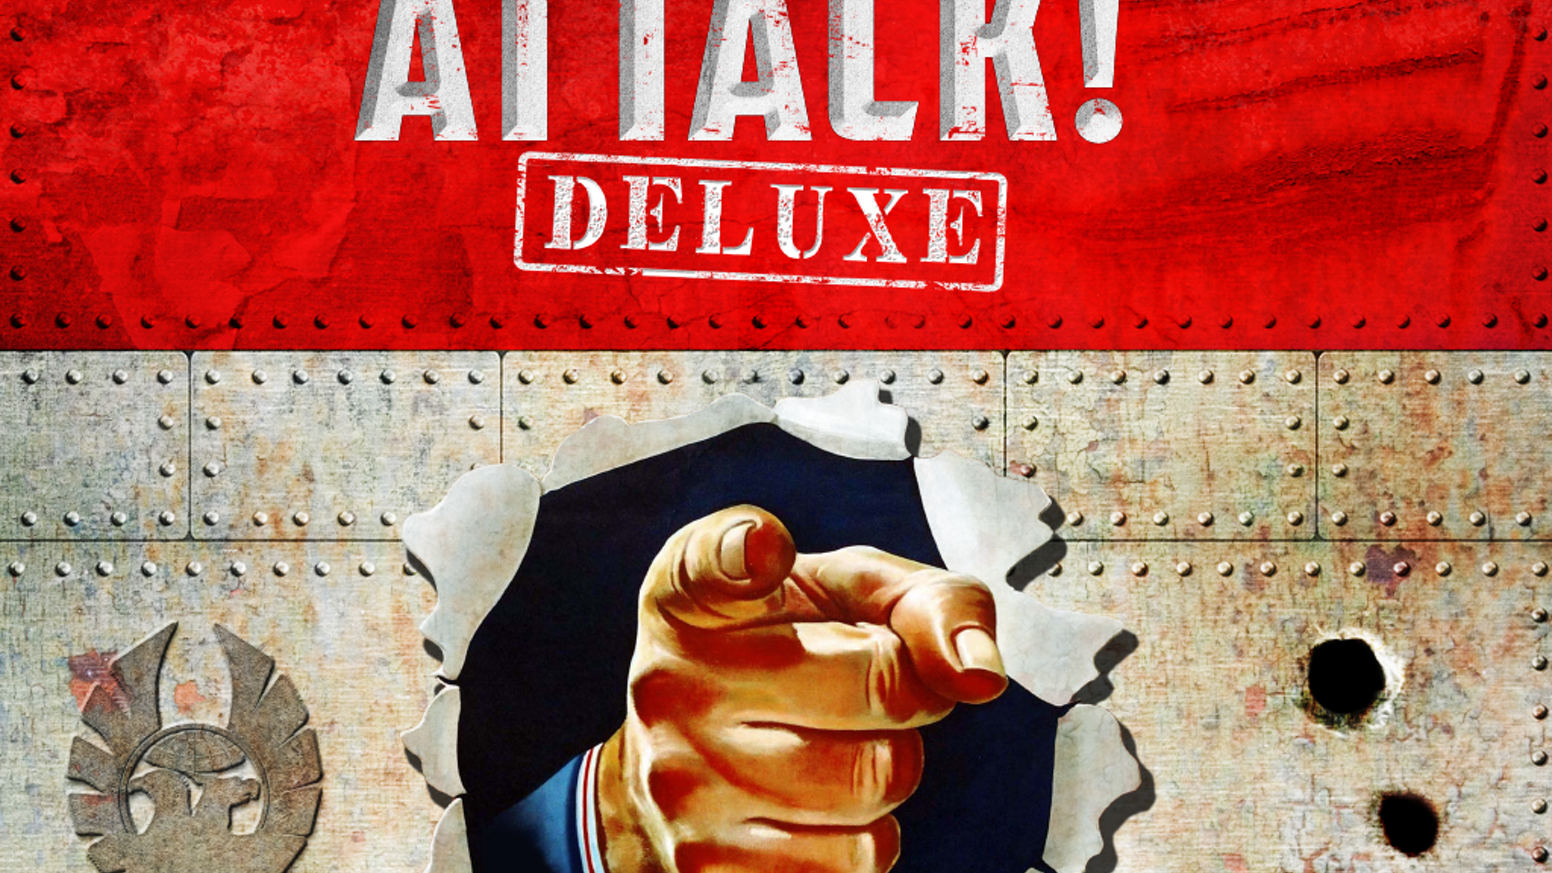 More than 100,000 people have bought ATTACK! Now you can get its Deluxe Expansion! Join the Fight Today!